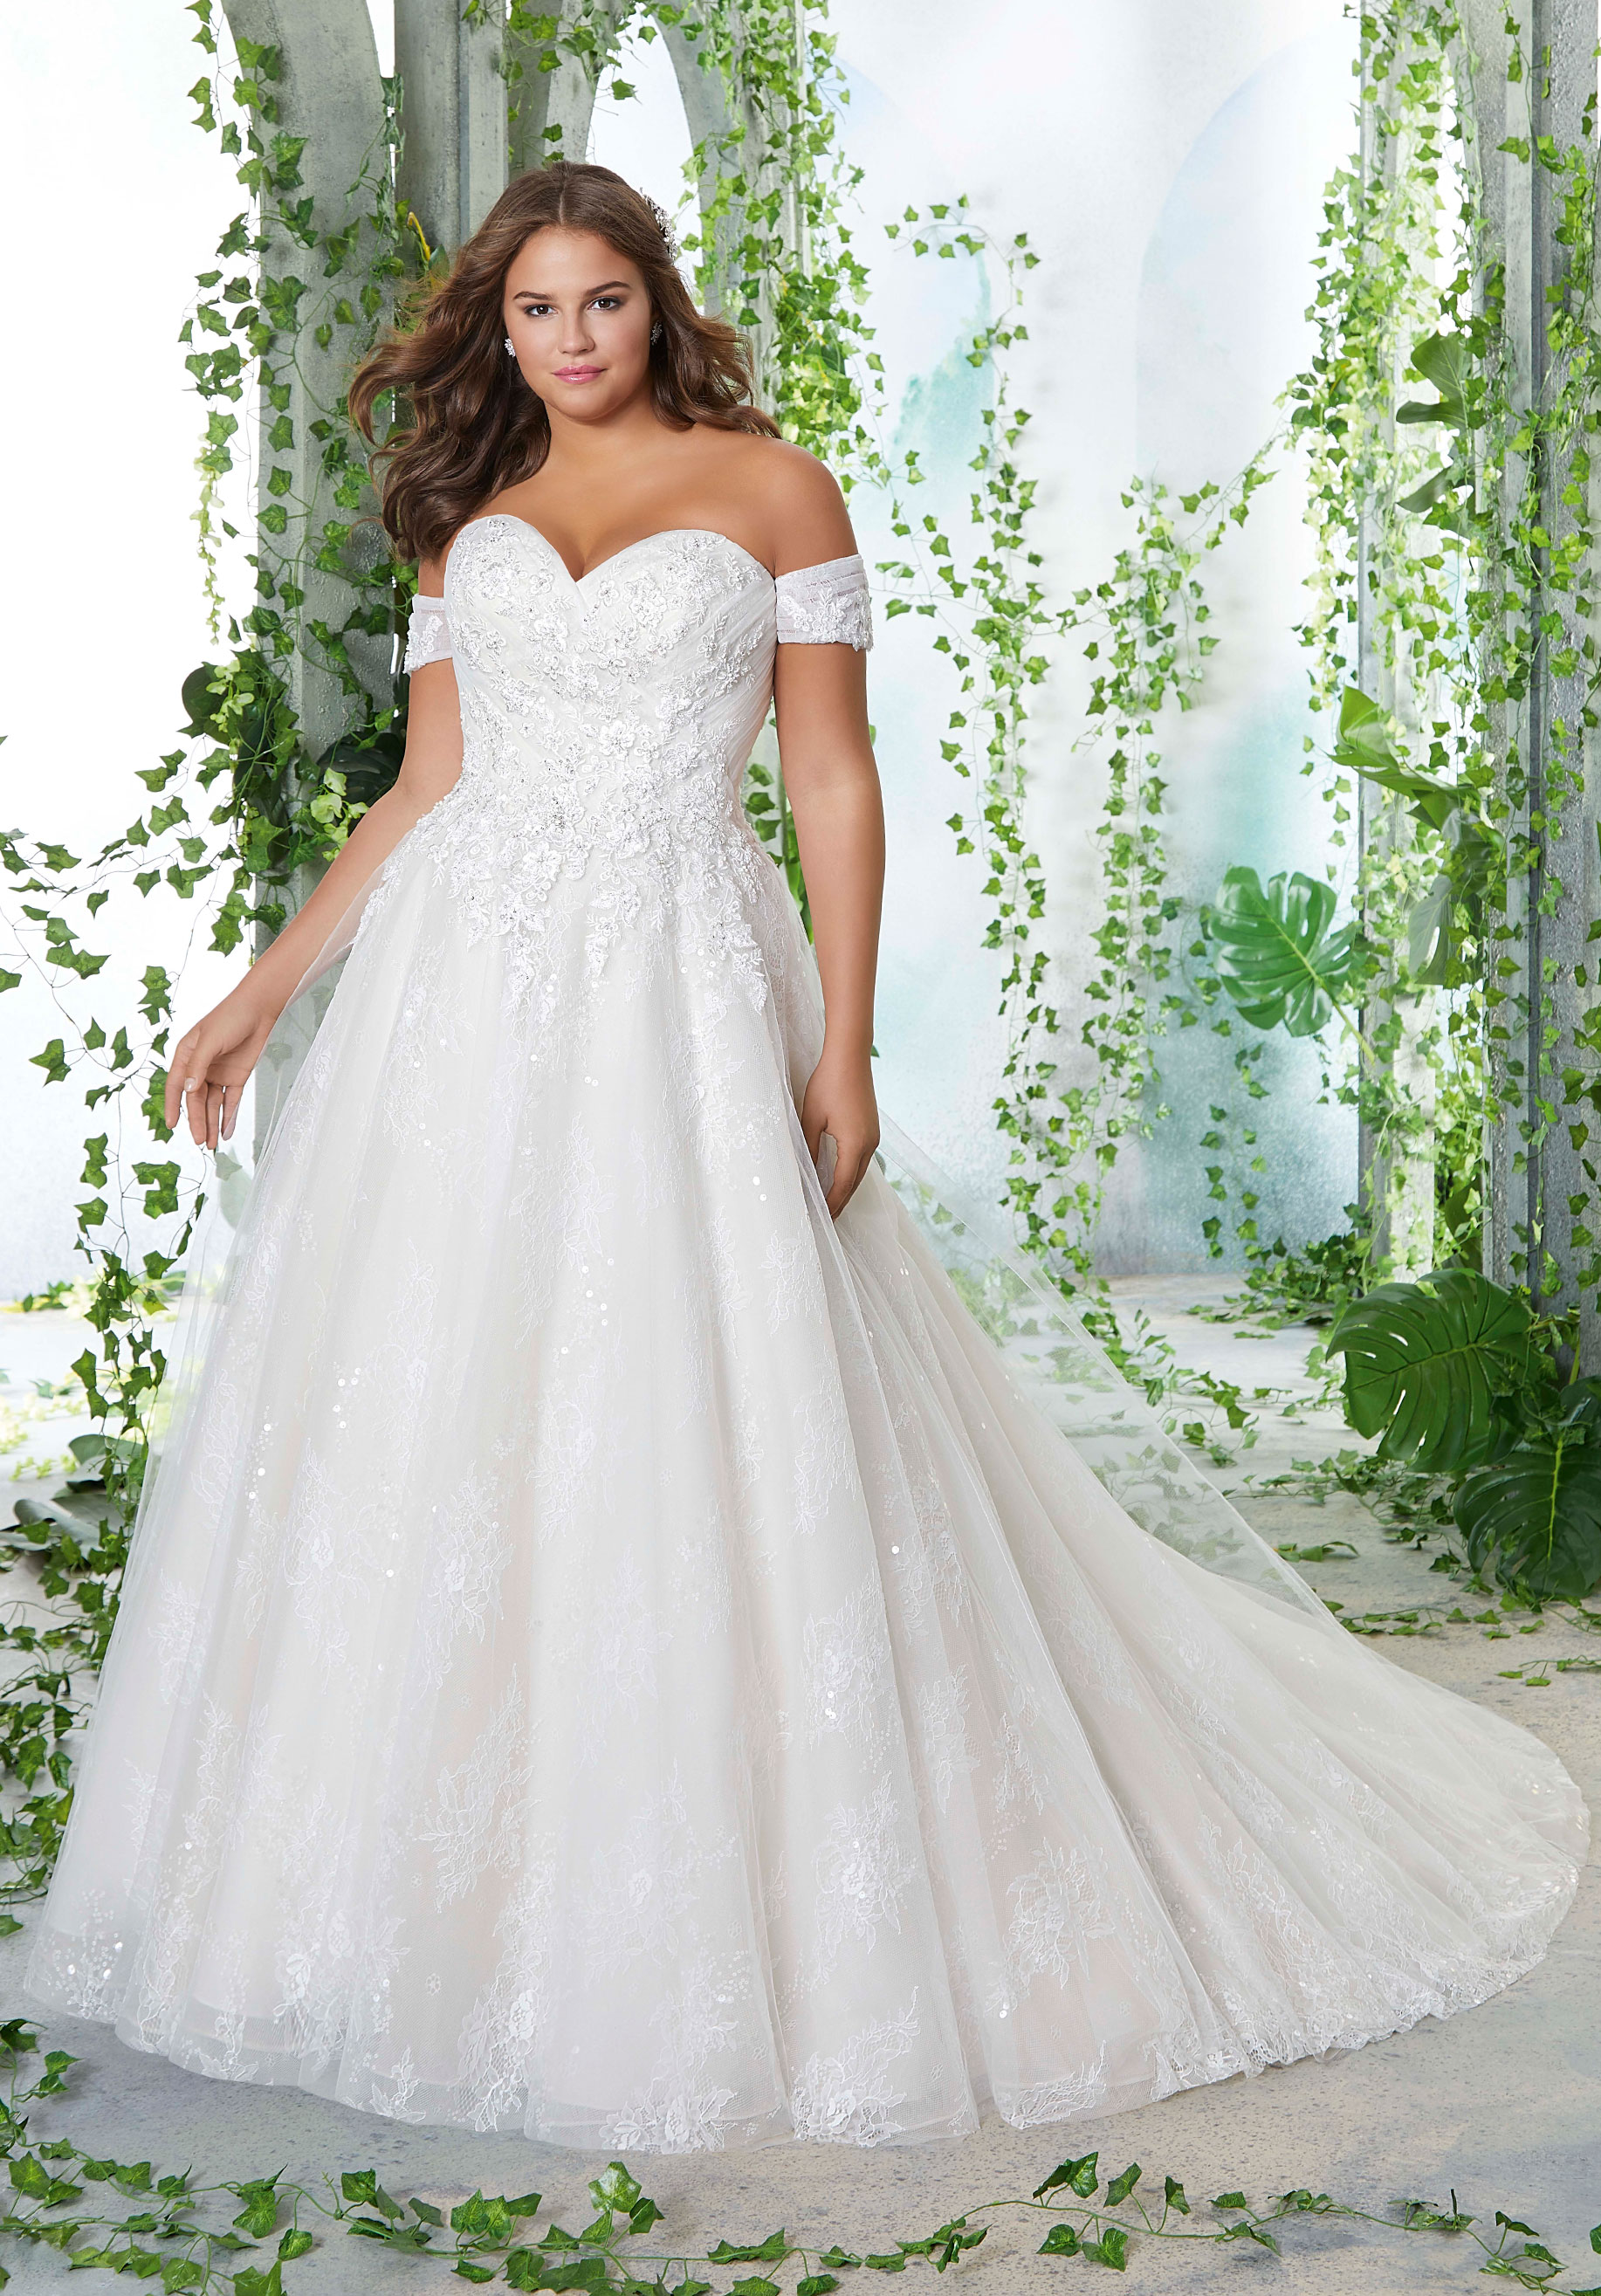 How to choose a wedding dress for a plus size bride?